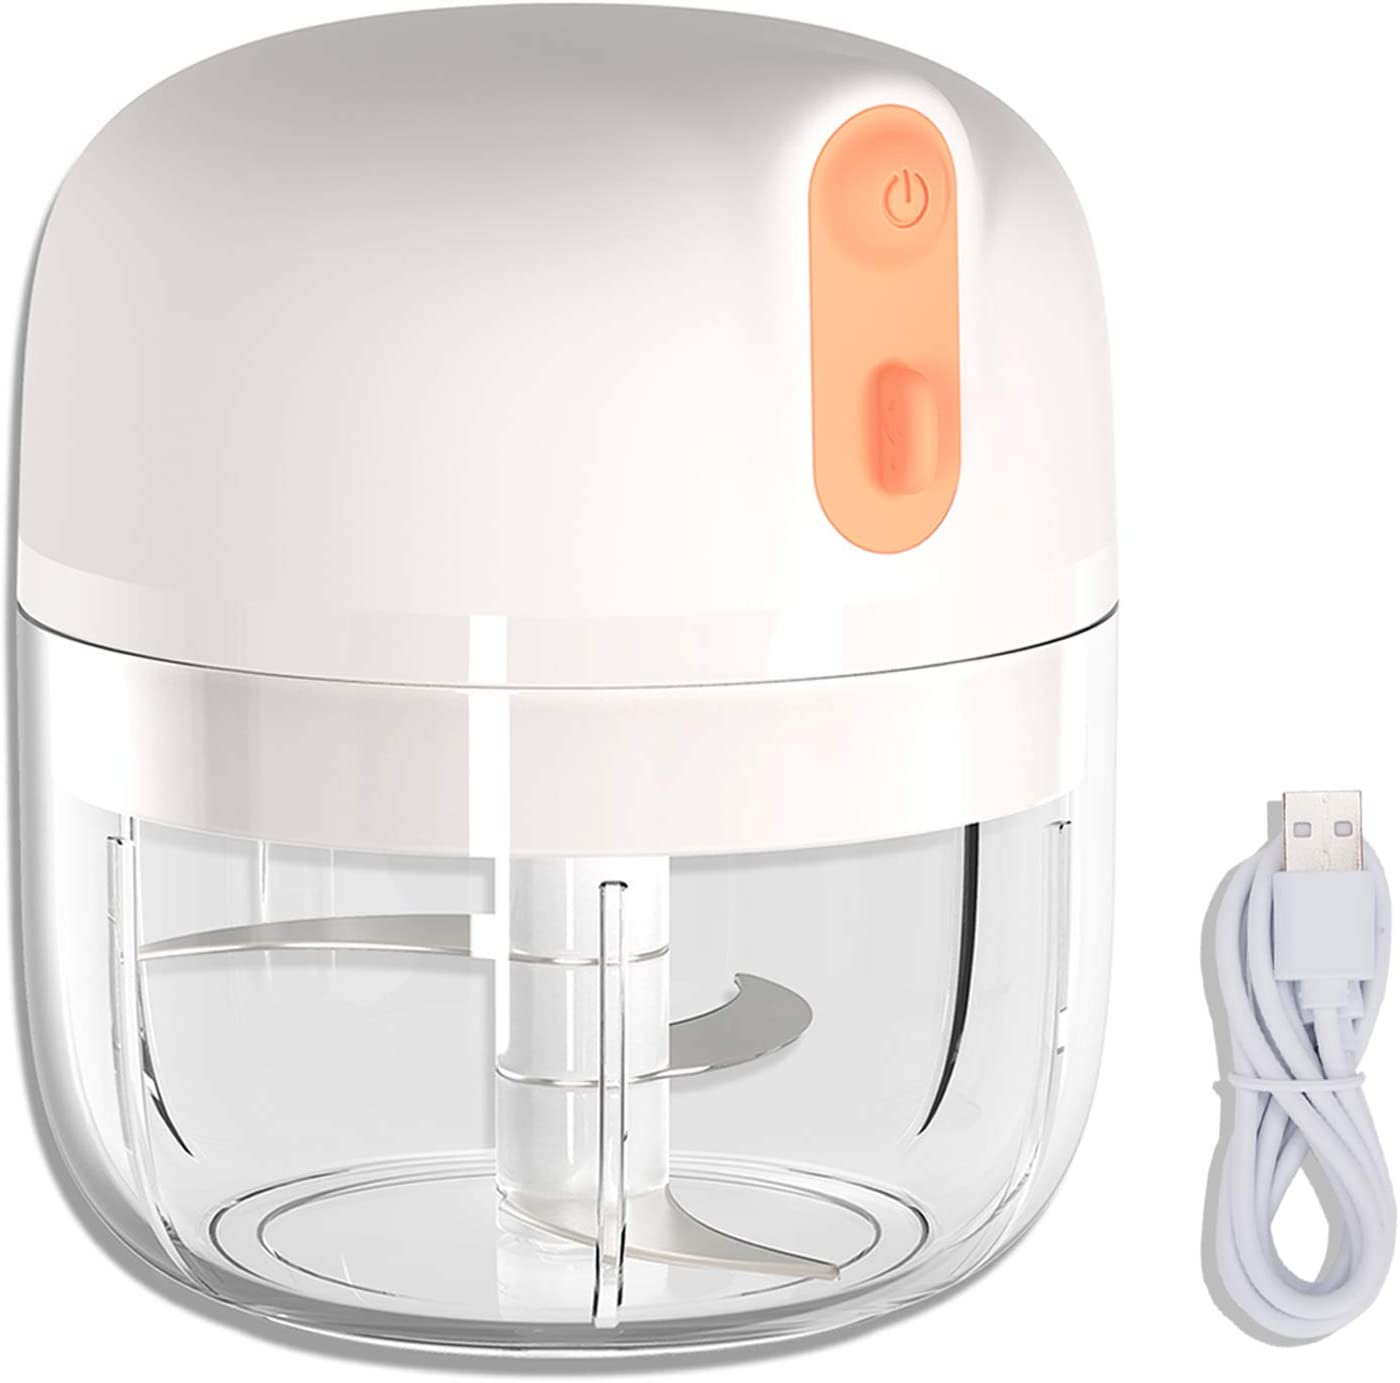 Electric Mini Food Chopper, 250ML Wireless Portable Electric Mini Food Processor, Waterproof and Easy to Clean,Vegetable Chopper for Slicing, Shredding, Mincing & Puree